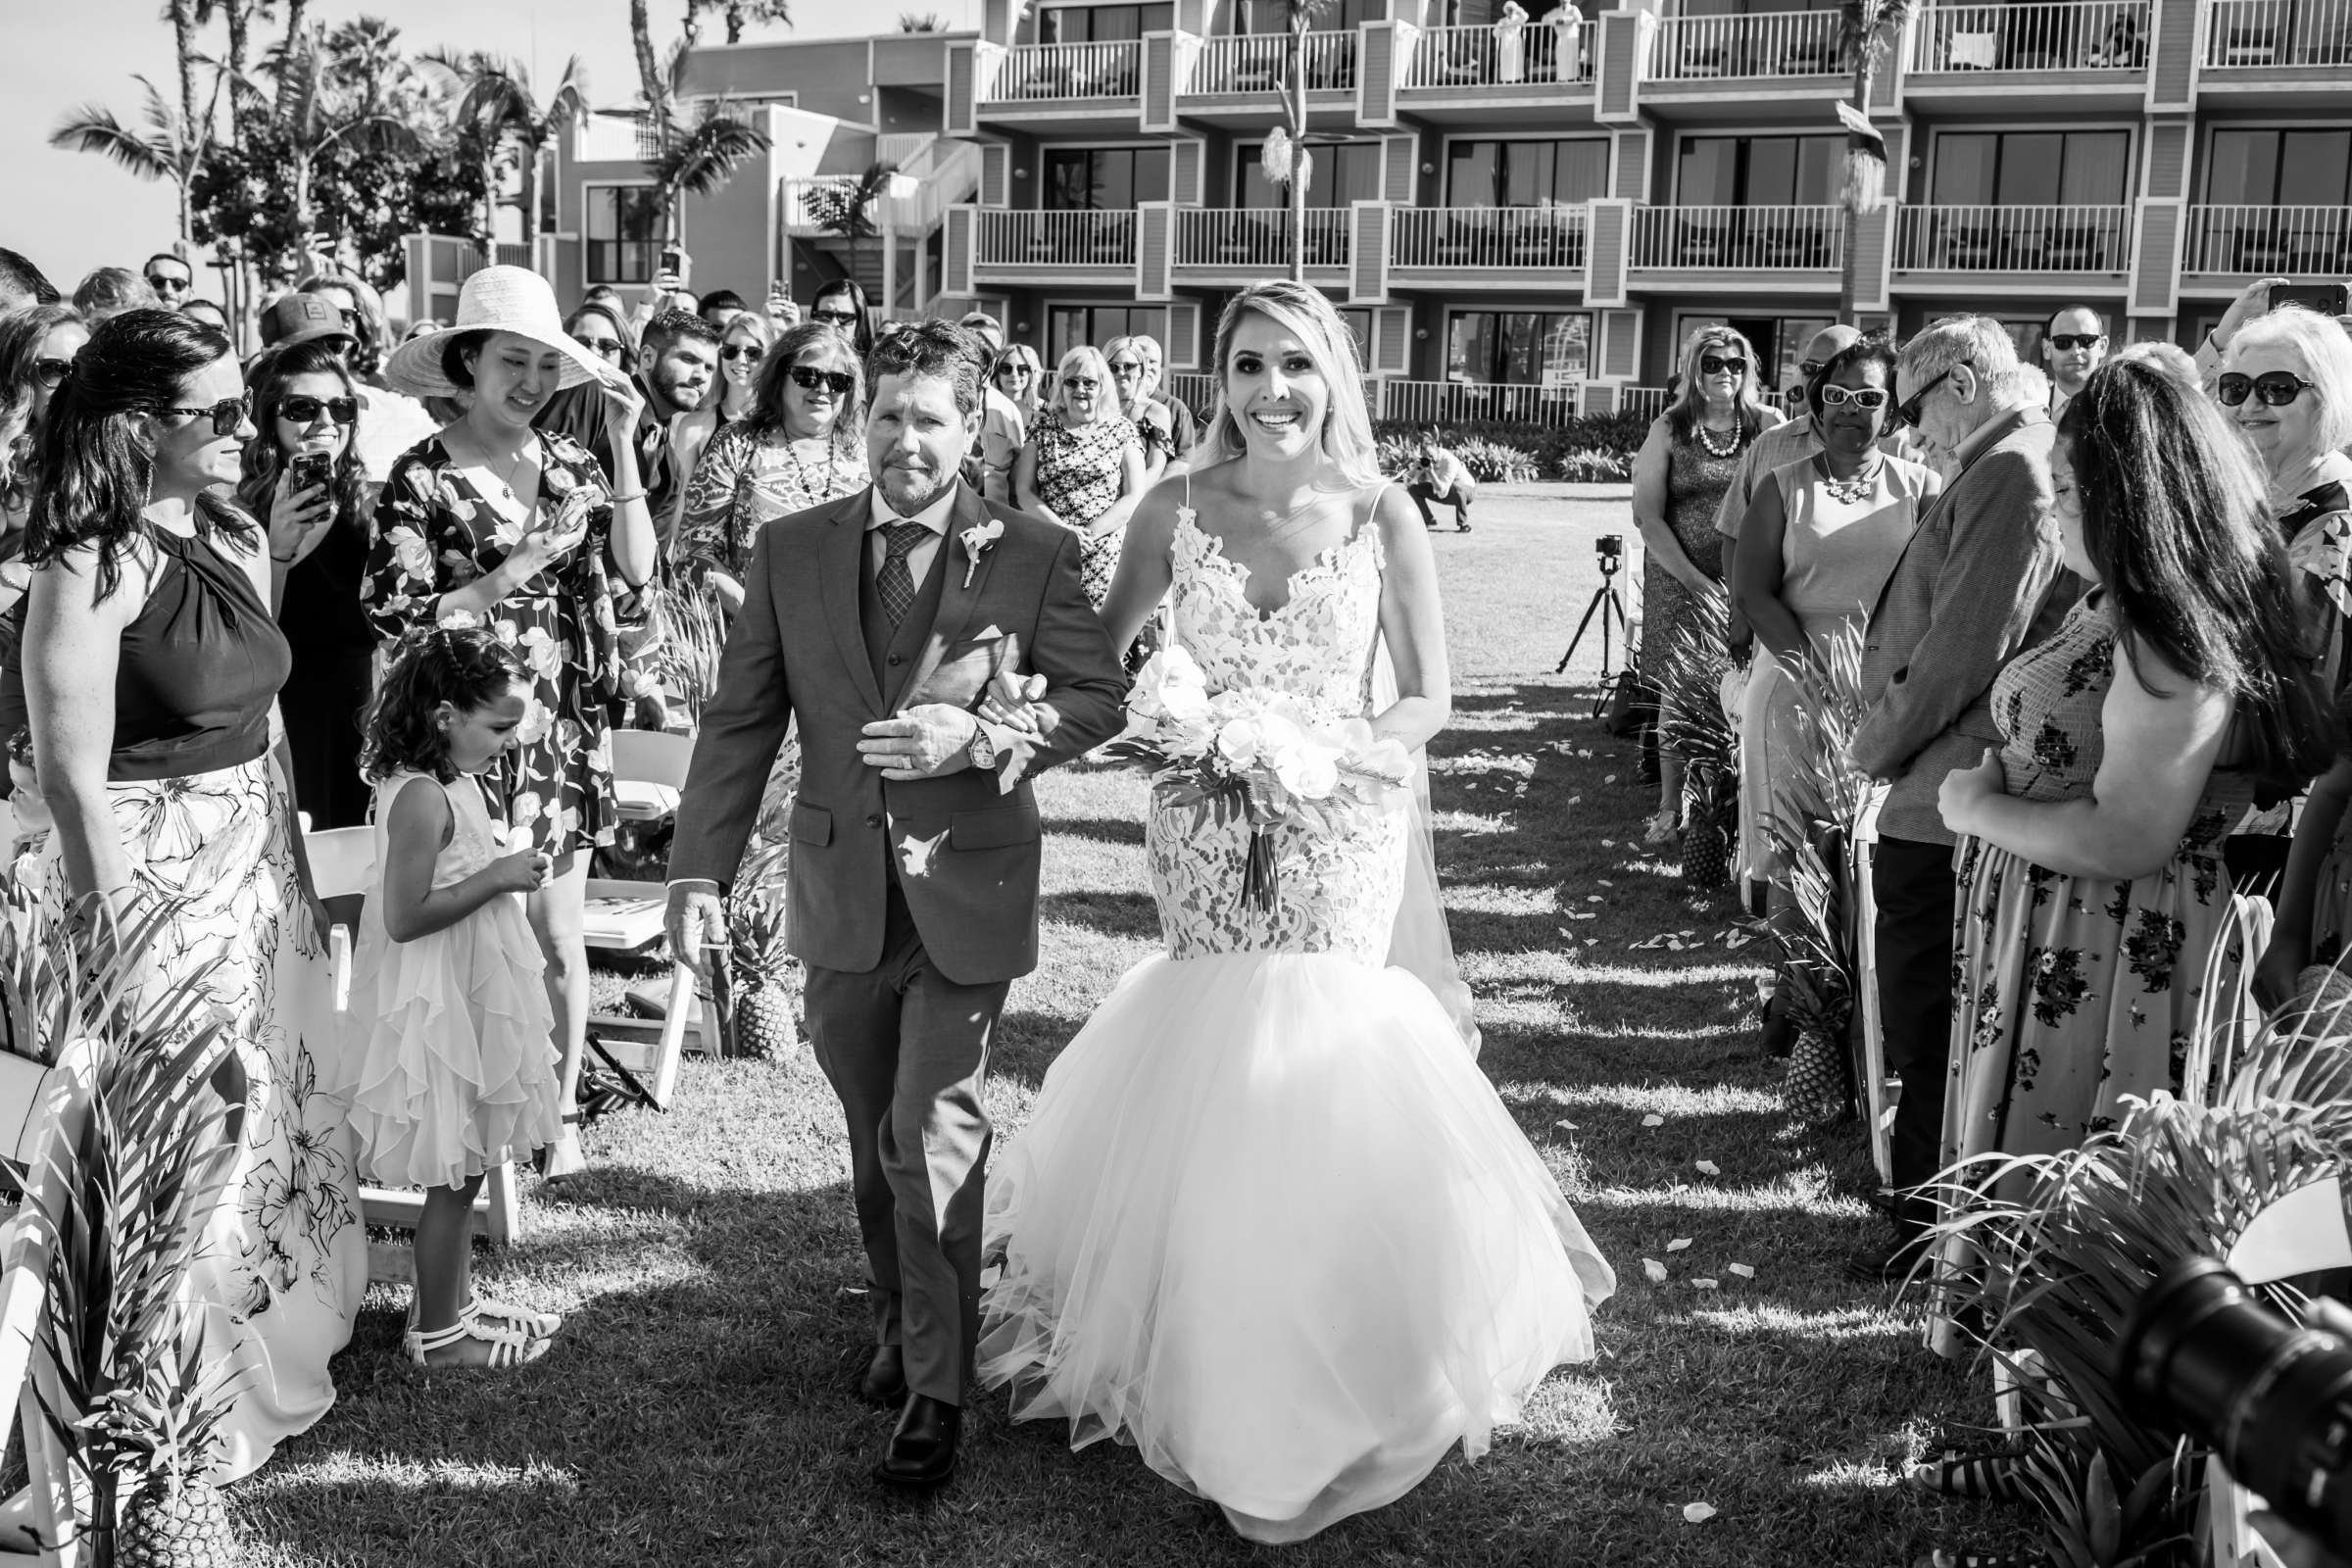 Coronado Island Marriott Resort & Spa Wedding coordinated by Bluestocking Weddings & Events, Ashleigh and Christopher Wedding Photo #56 by True Photography